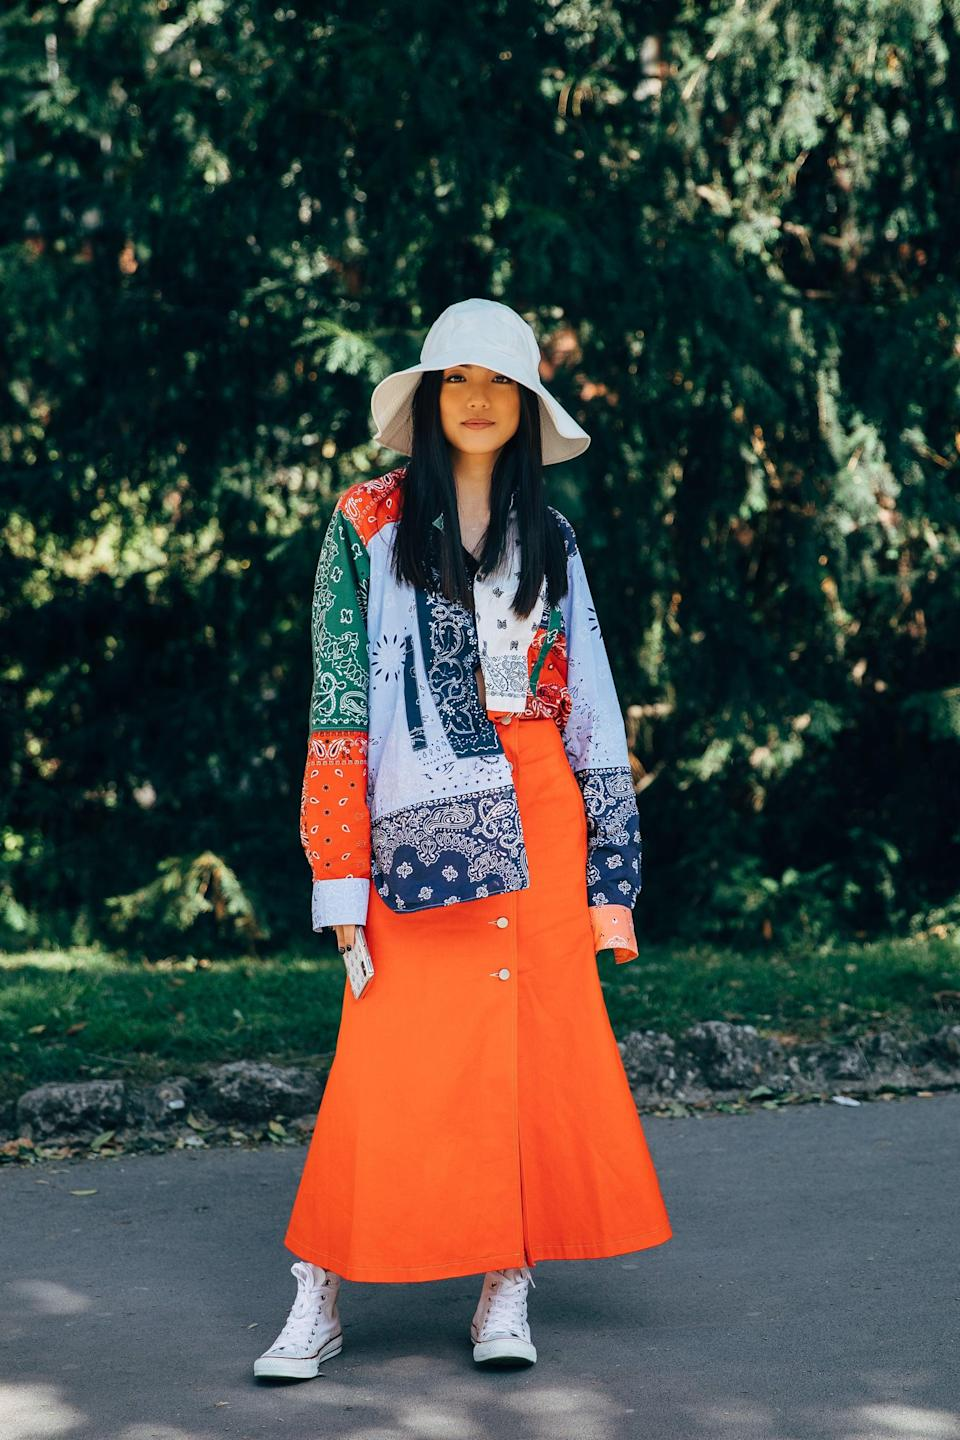 <p>There's nothing we don't love about bold summer colors and a dress paired with sneakers.</p>